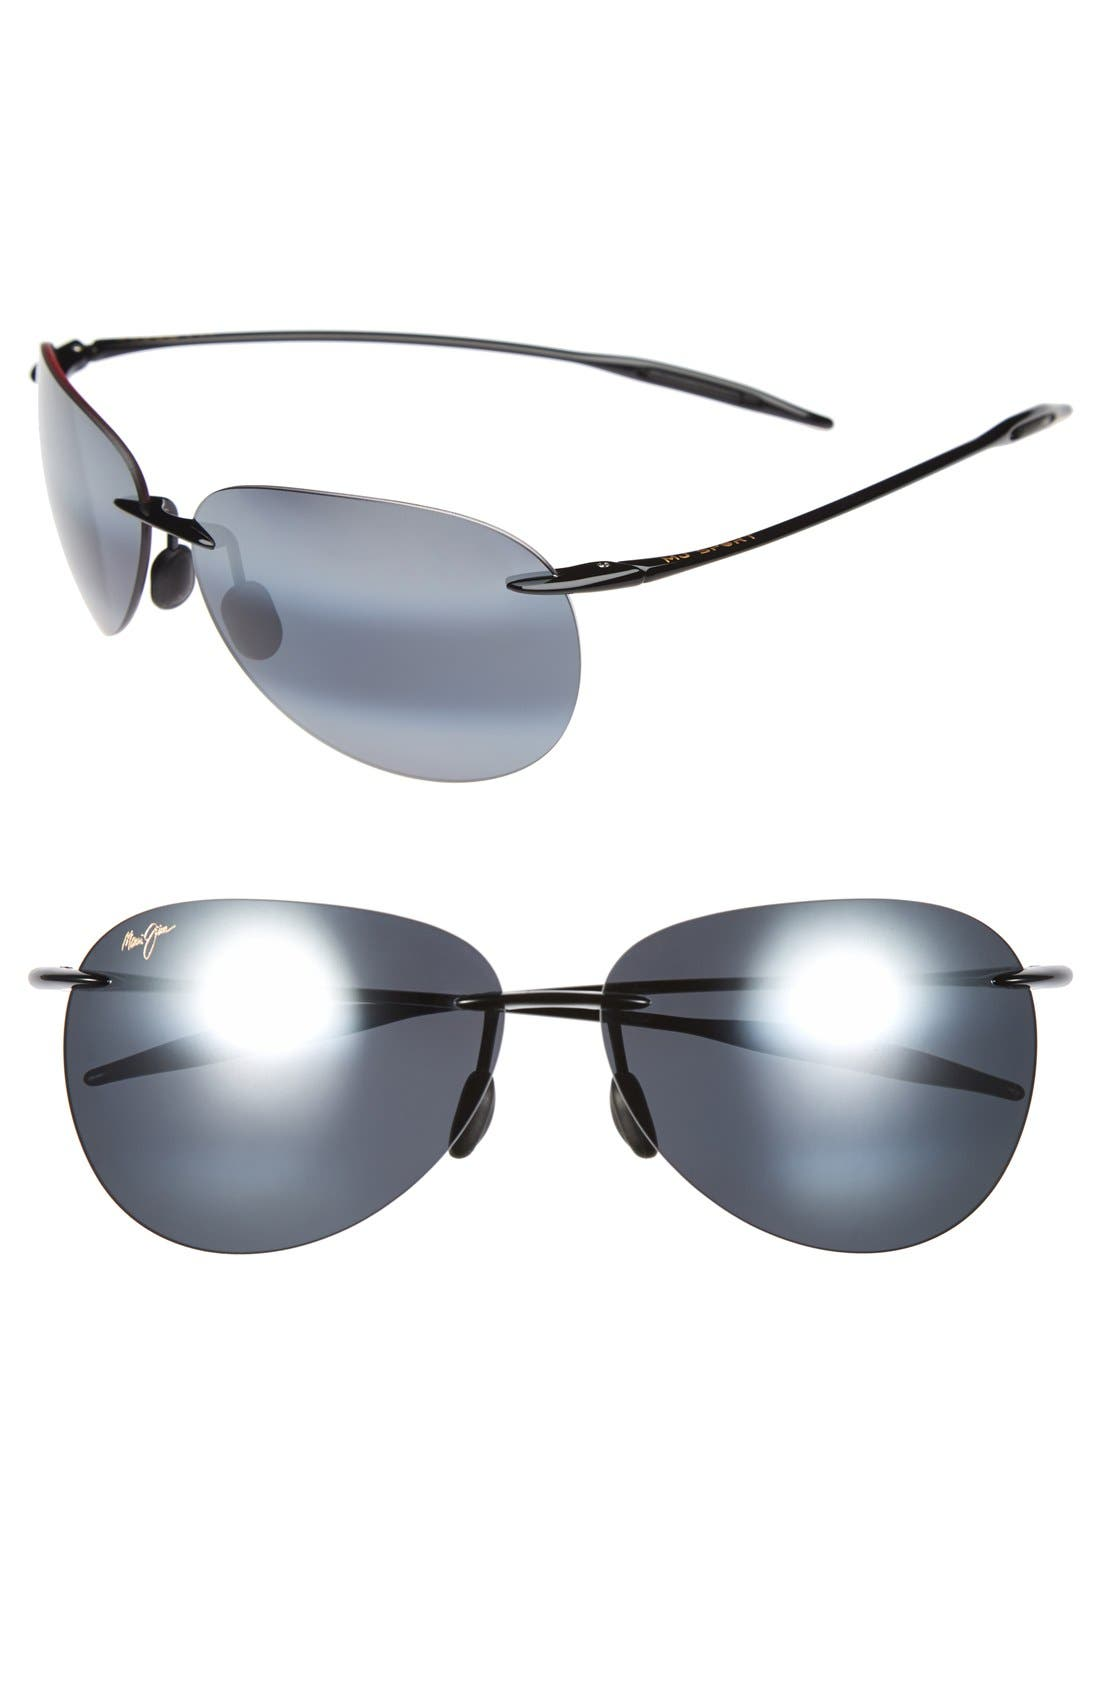 Sugar Beach 62mm PolarizedPlus2<sup>®</sup> Rimless Sunglasses,                         Main,                         color, Gloss Black/ Neutral Grey